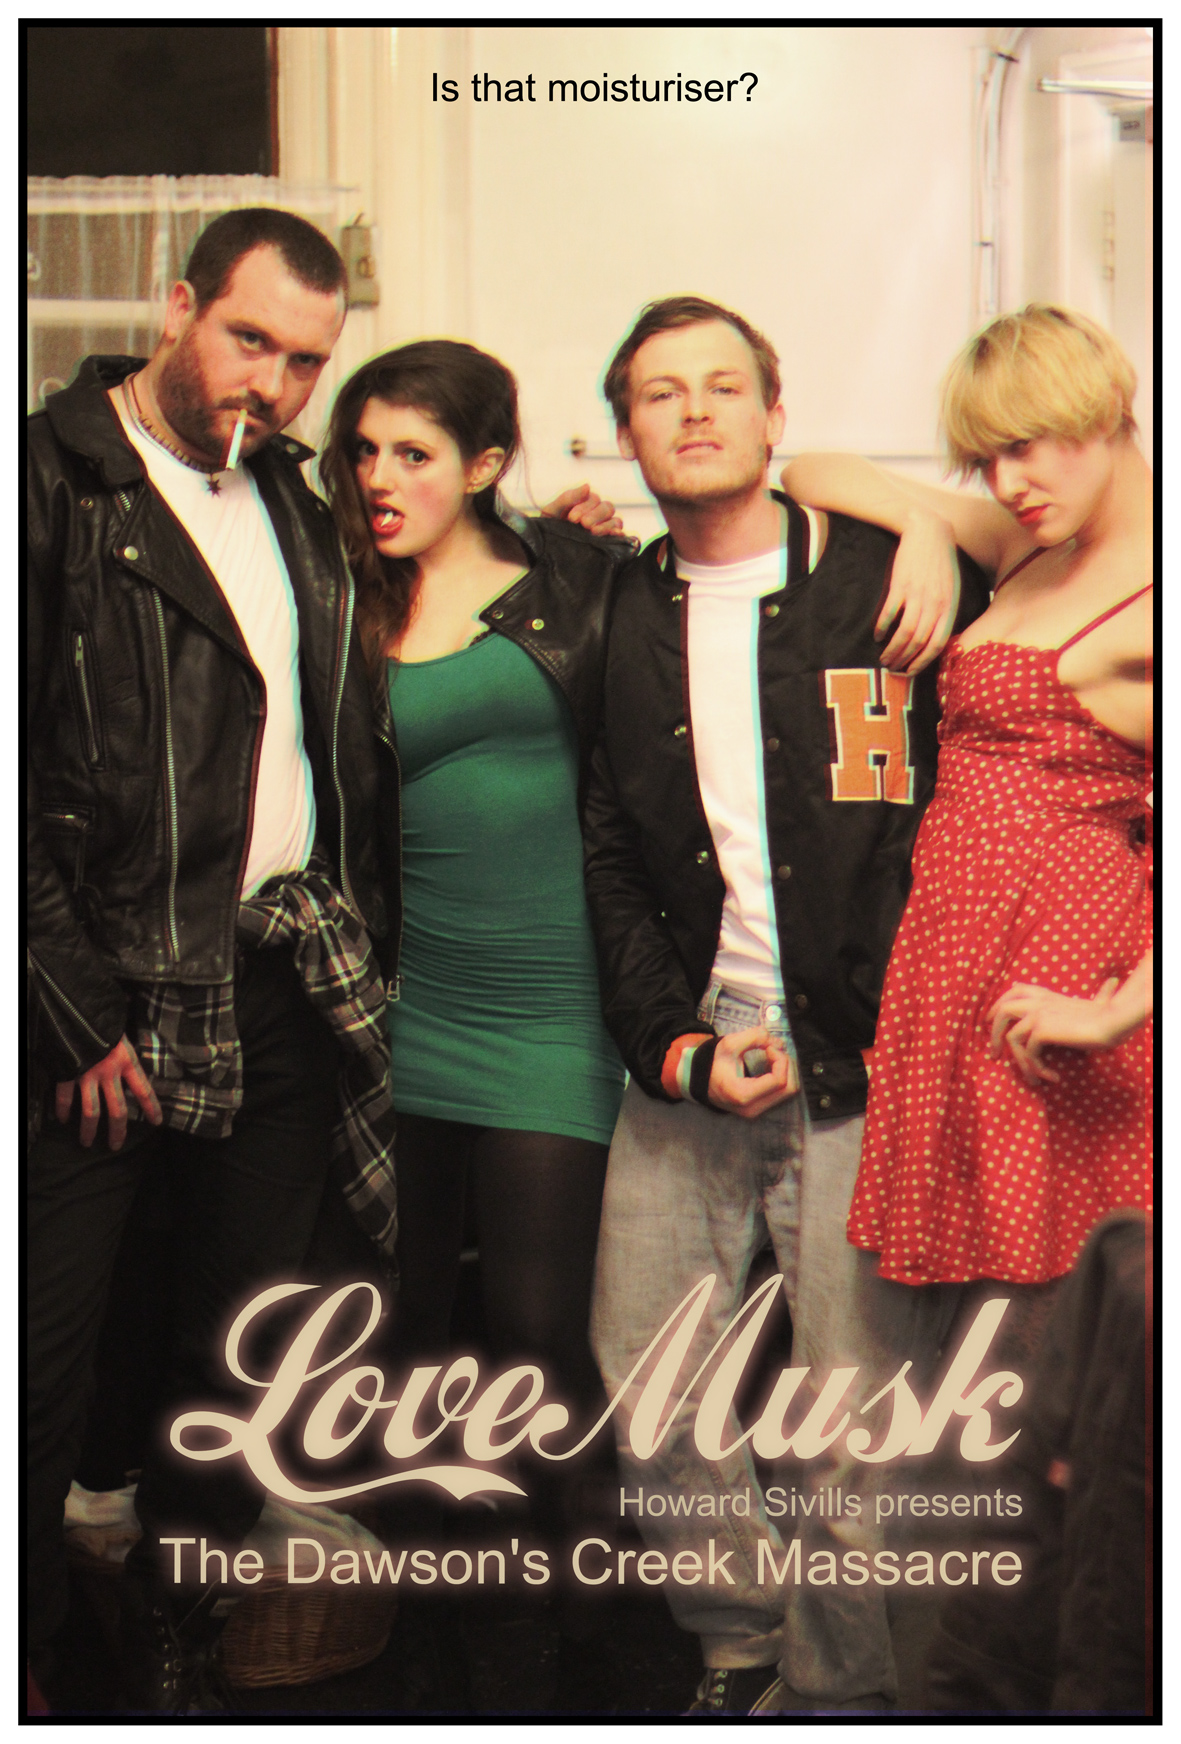 oster for the troubling performance work 'Love Musk' by H. Von Roy (second from right)